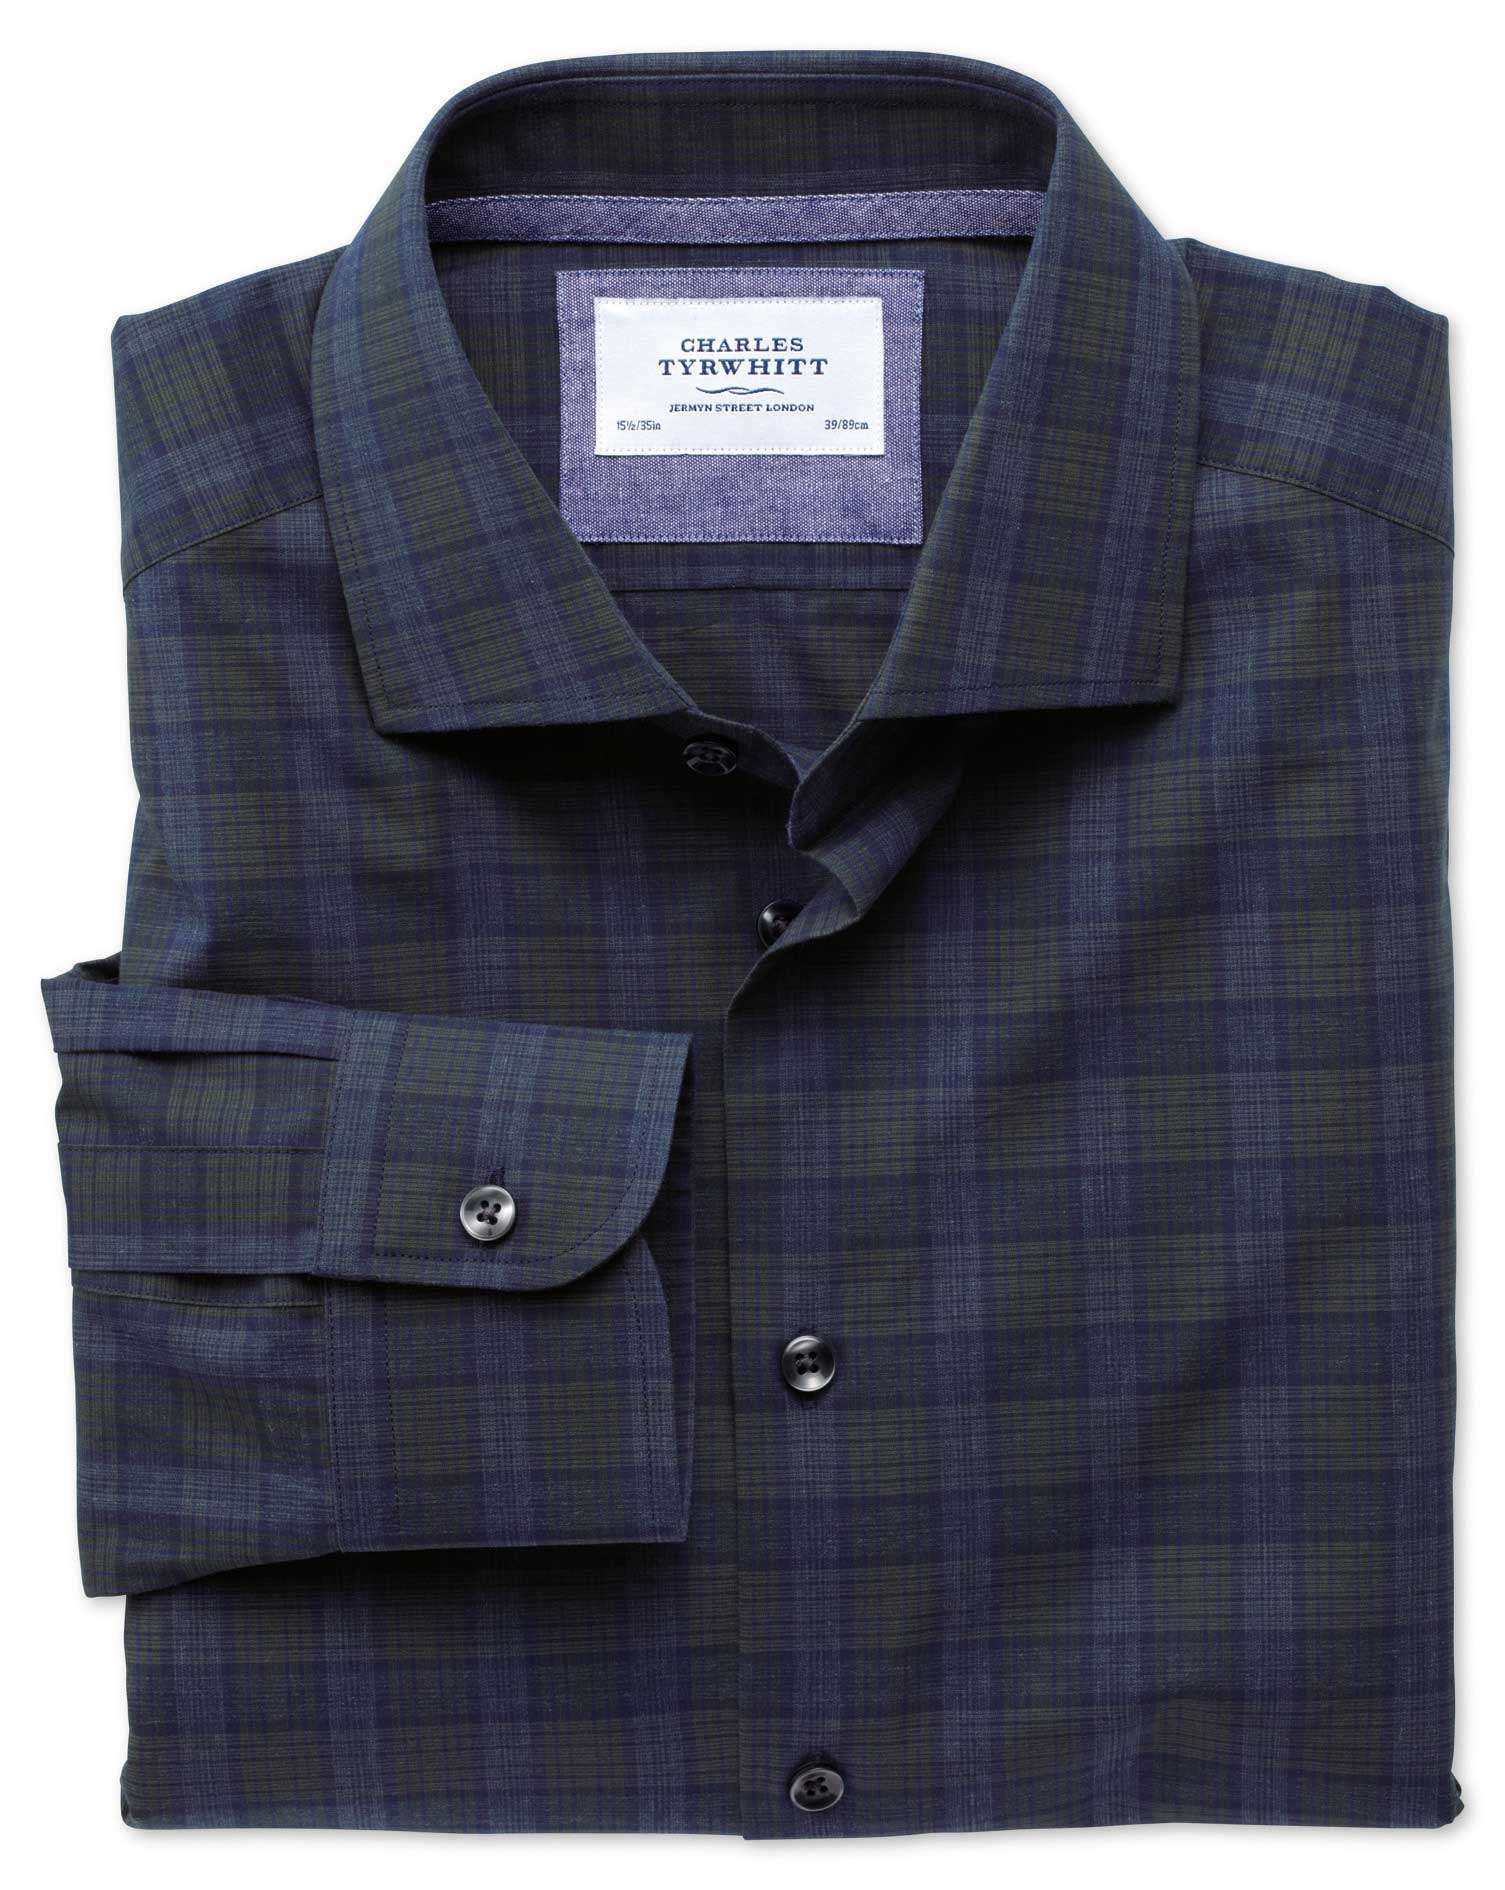 Classic Fit Semi-Cutaway Collar Business Casual Melange Navy and Green Check Egyptian Cotton Formal